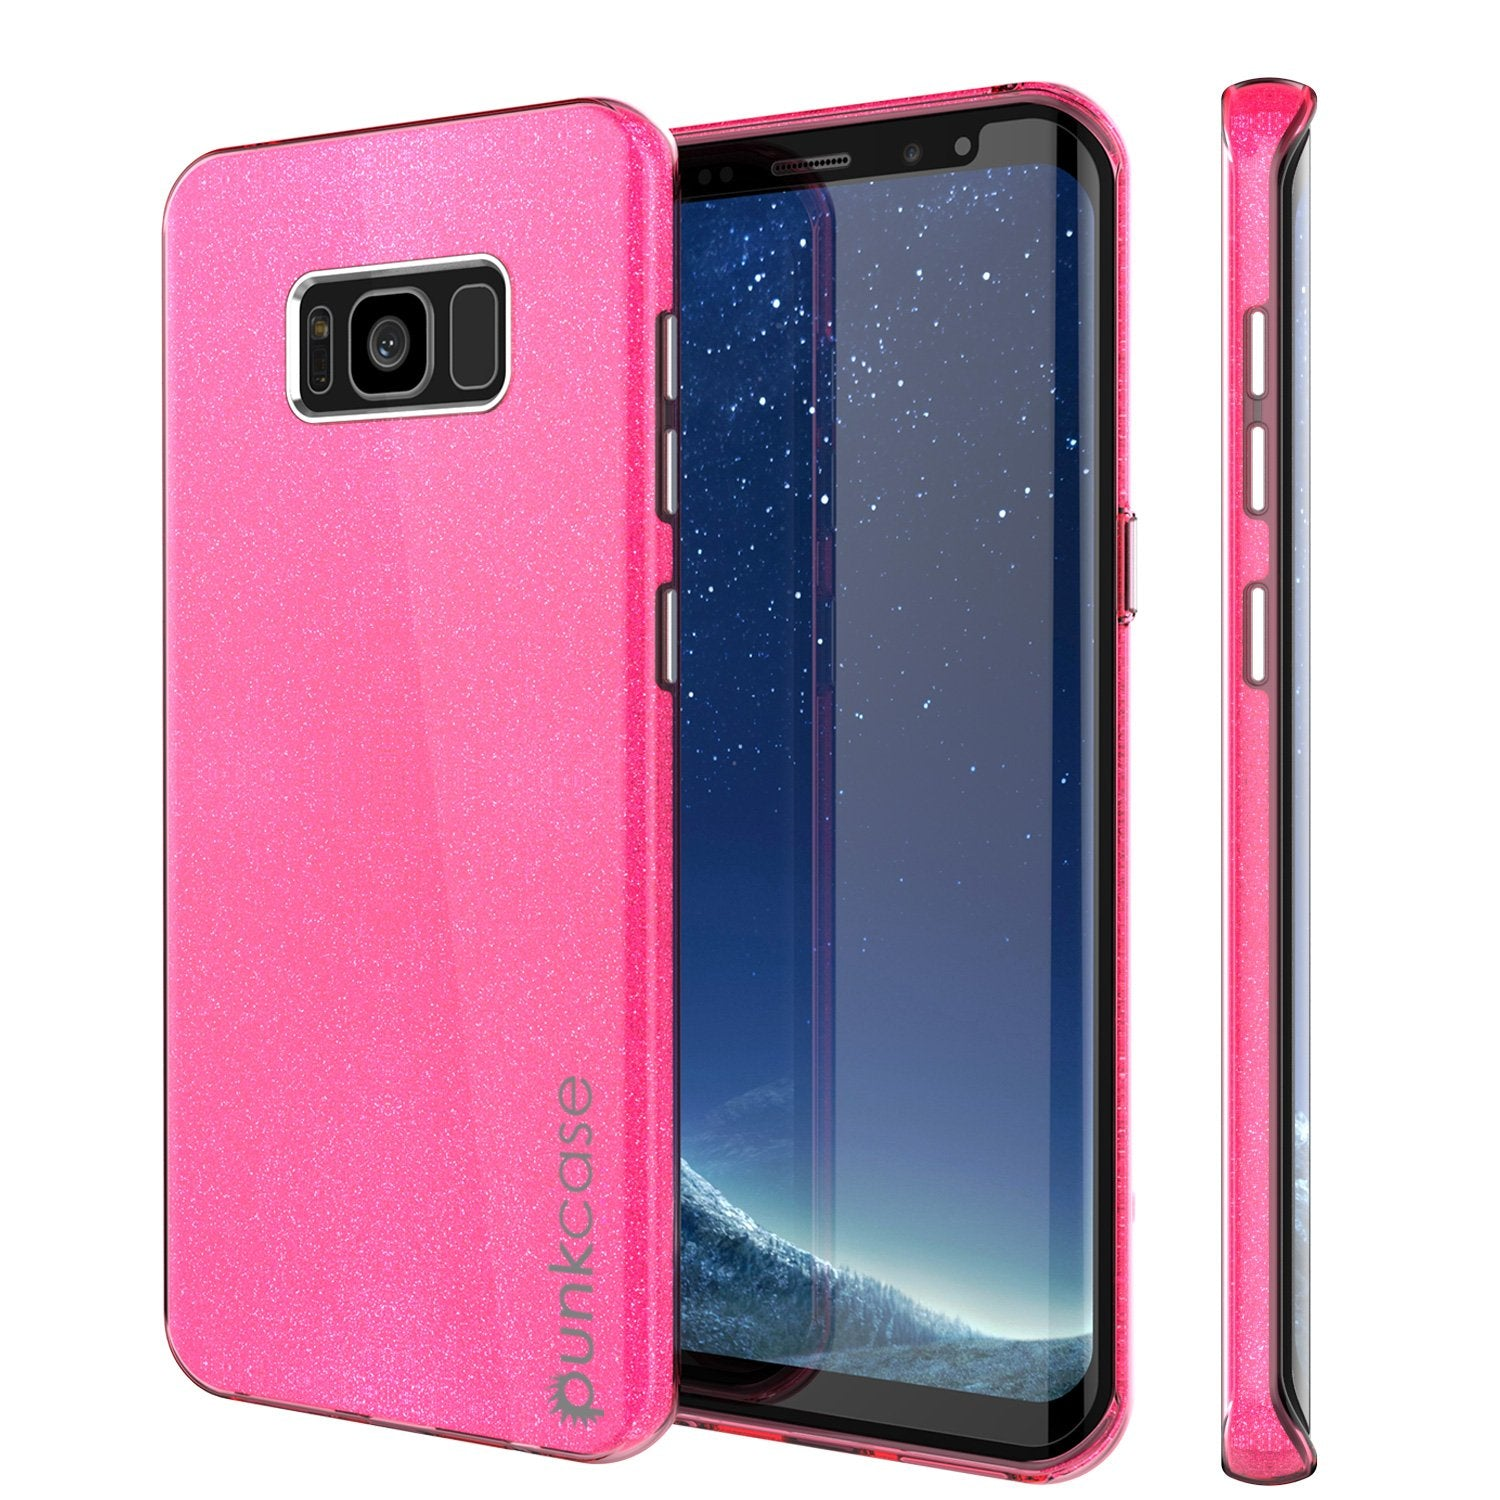 Galaxy S8 Case, Punkcase Galactic 2.0 Series Ultra Slim Protective Armor TPU Cover w/ PunkShield Screen Protector | Lifetime Exchange Warranty | Designed for Samsung Galaxy S8 [Pink]